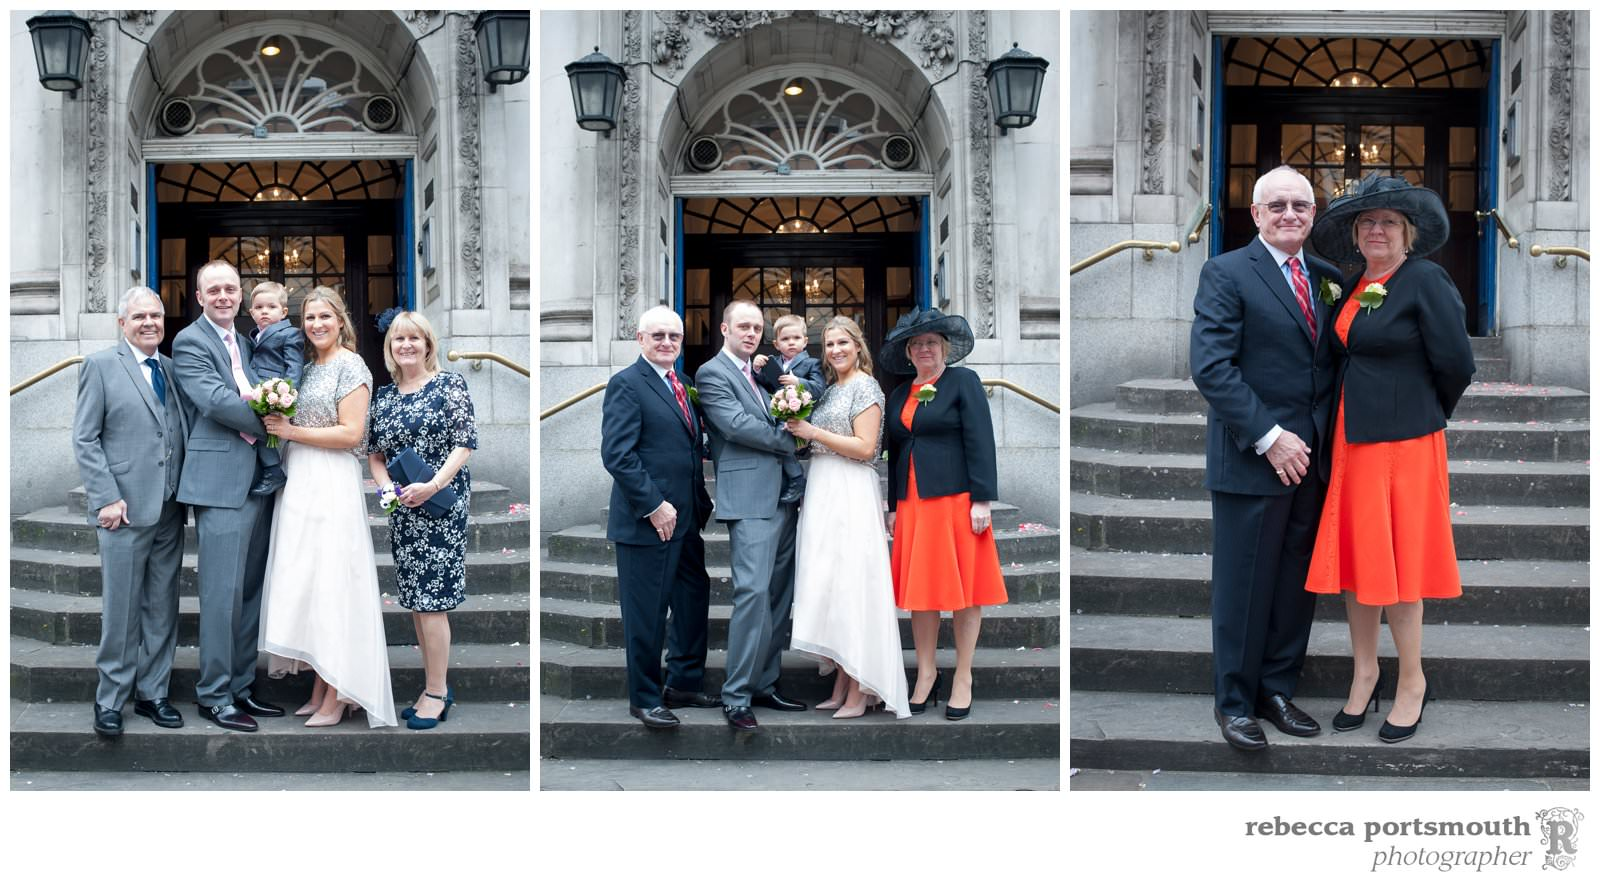 The Chelsea Registry Office wedding photos of Victoria + Dominic: family portraits and wedding groups on the steps of Old Chelsea Town Hall